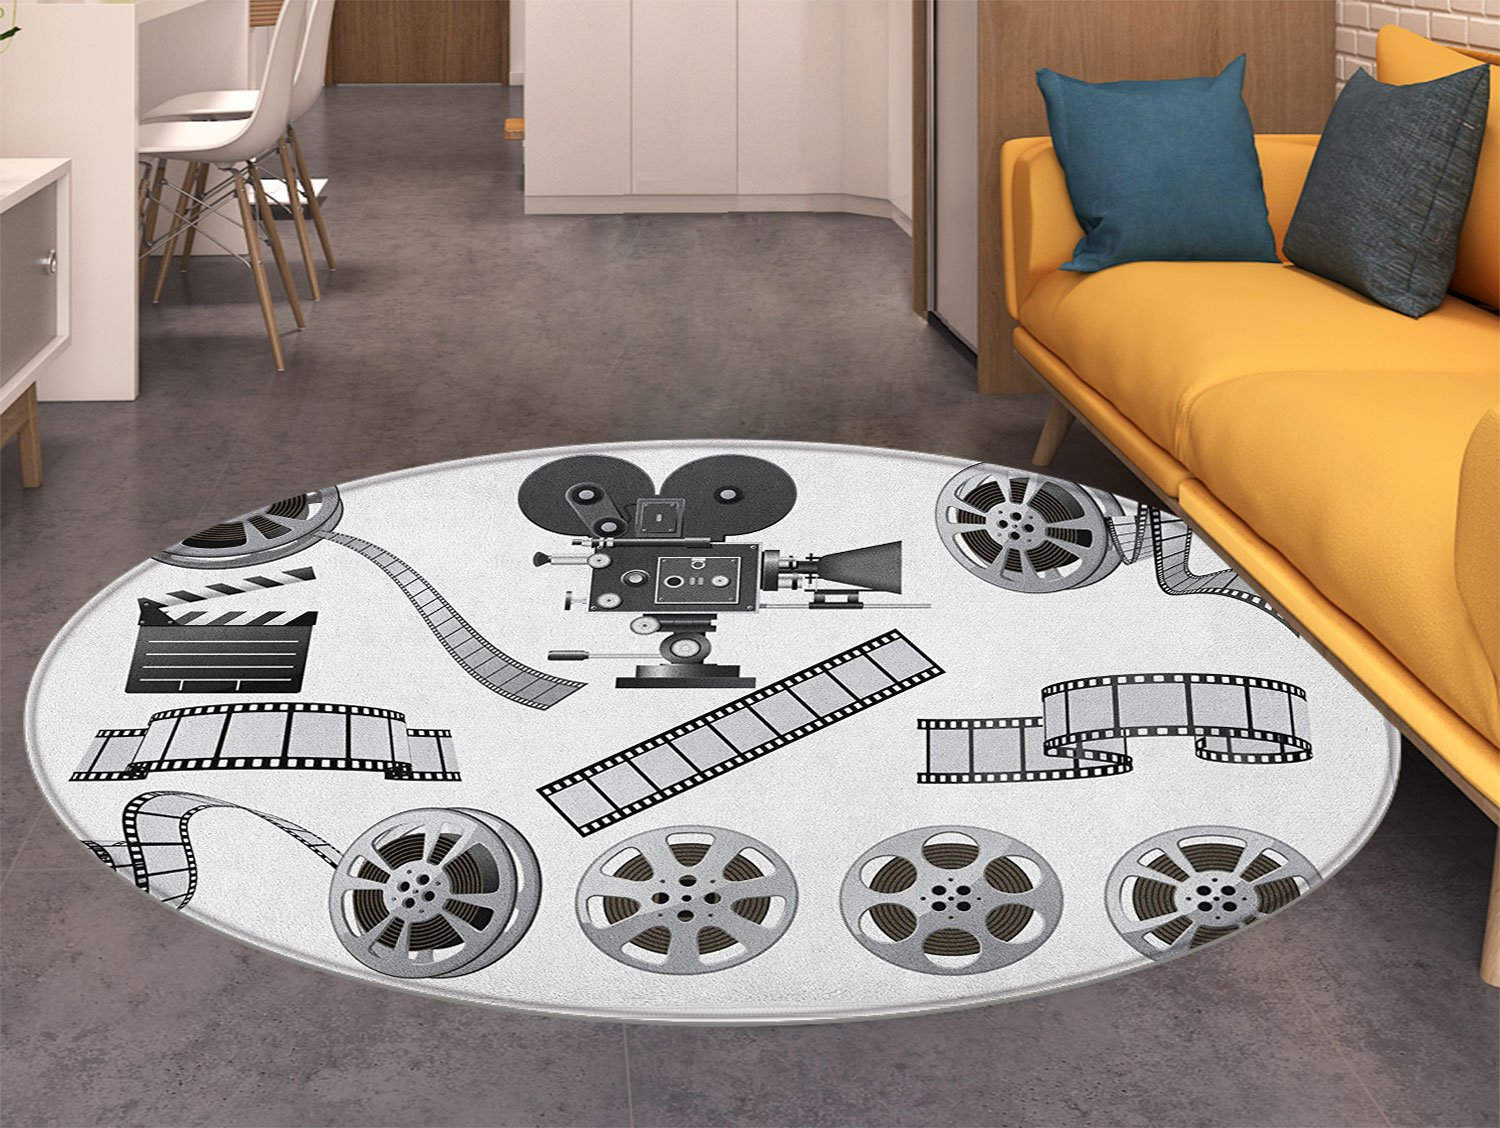 Movie Theater Round Area Rug Carpet Movie Industry Themed Greyscale Illustration of Projector Film Slate and Reel Living Dinning Room and Bedroom Rugs Grey Black by also easy